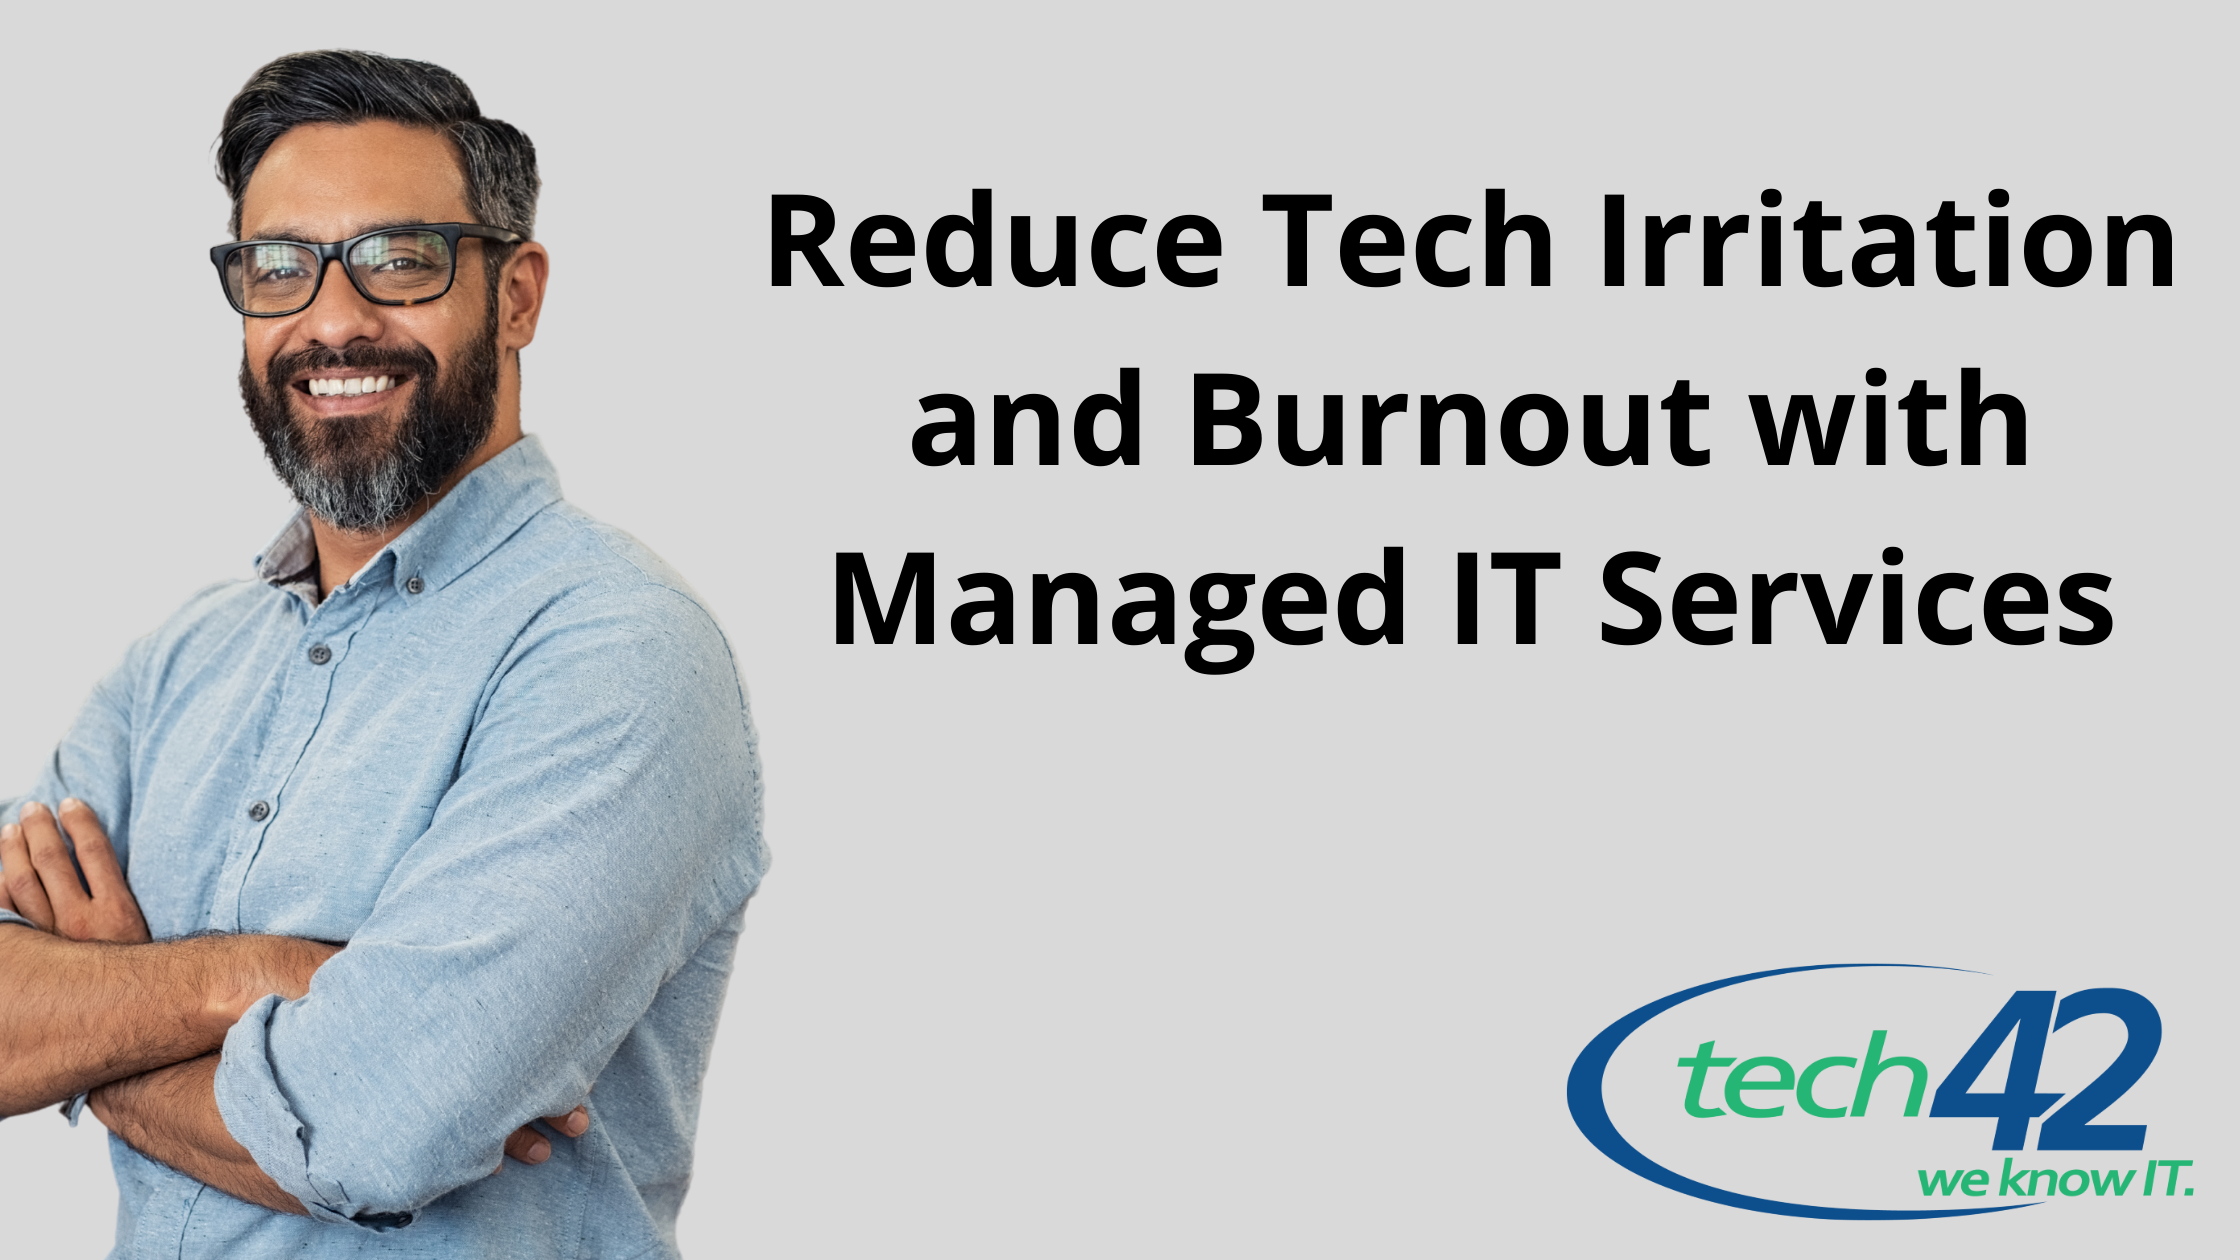 Reduce Tech Irritation and Burnout with Managed IT Services